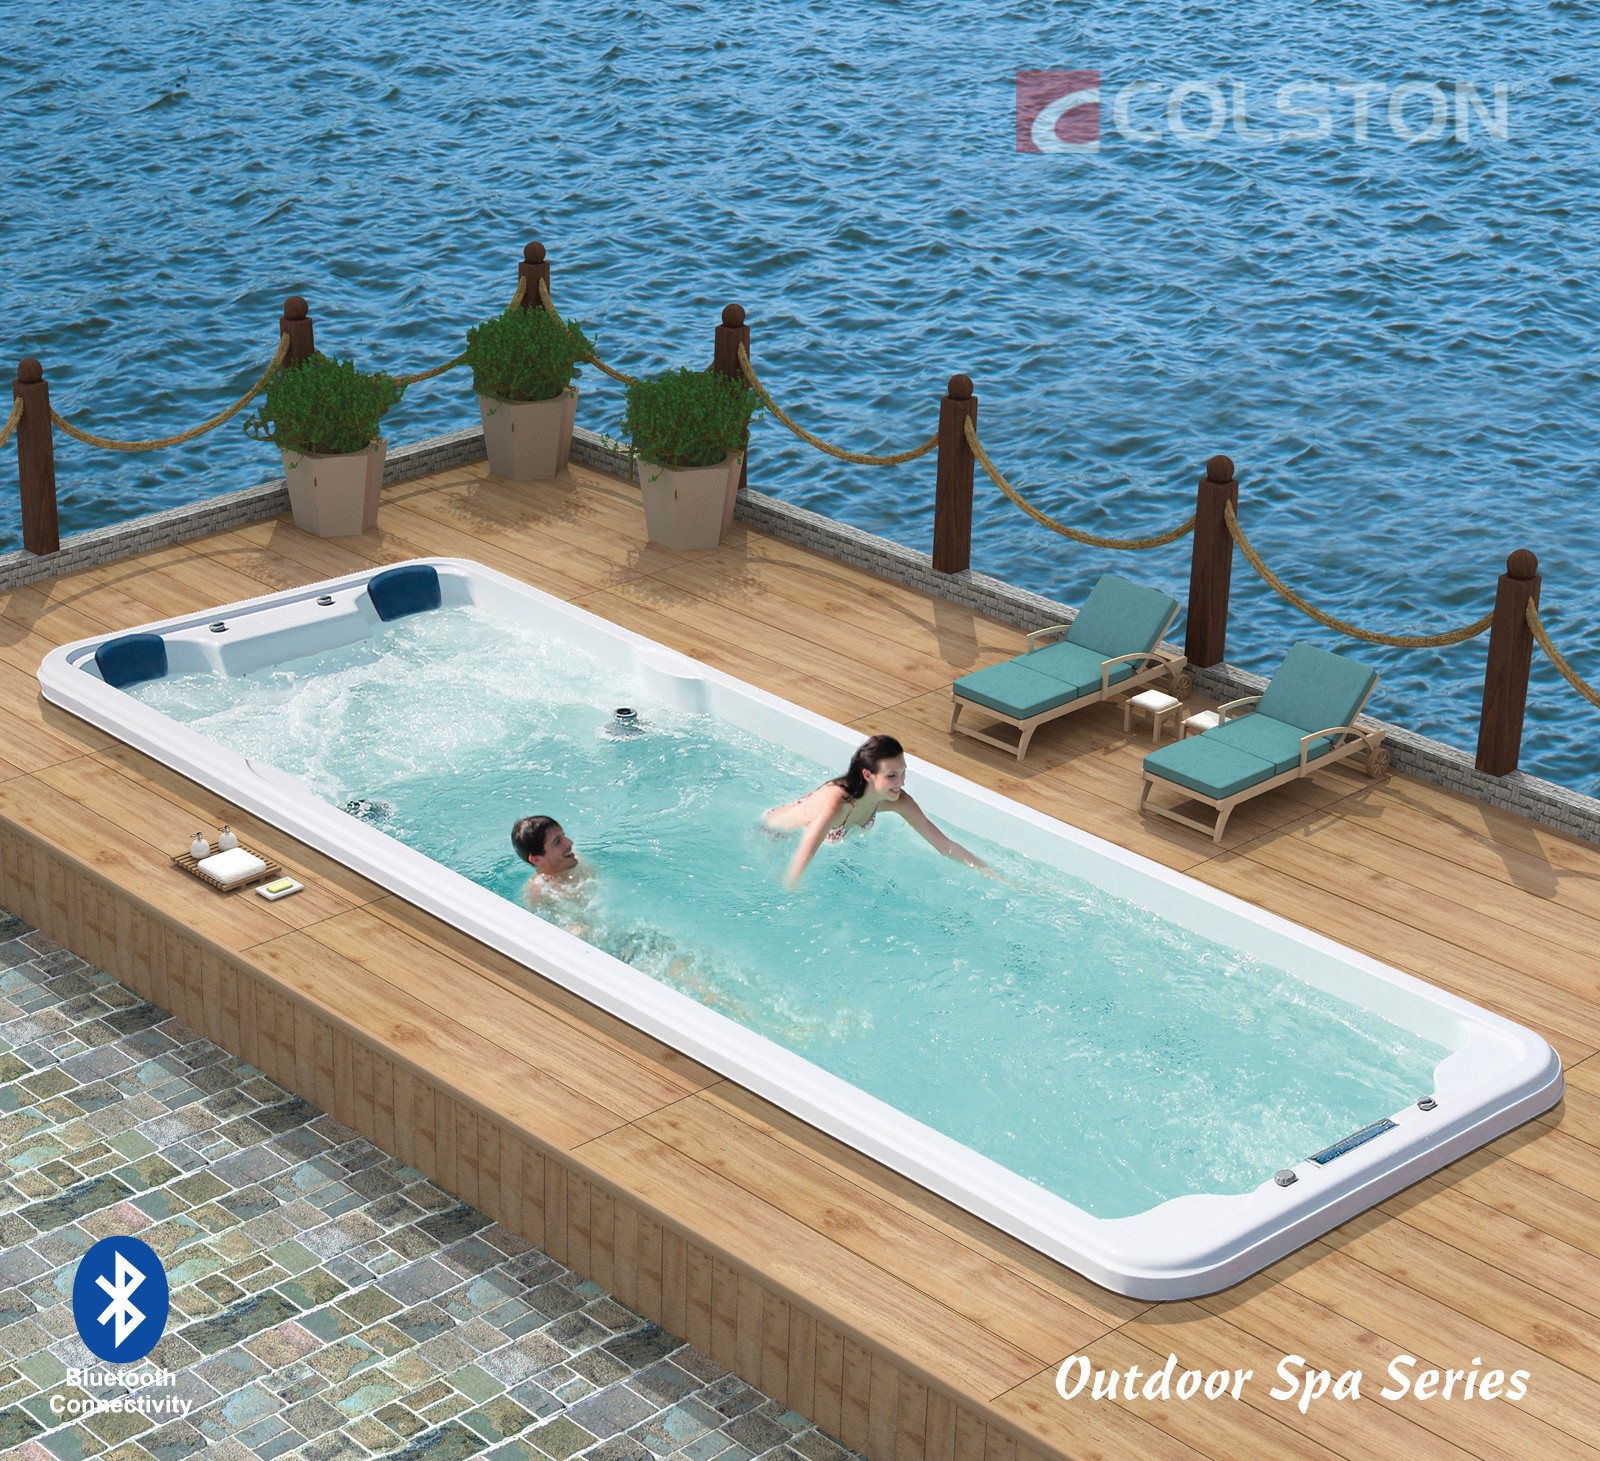 Luxury Outdoor Pool And Spa Manufacturers Brands Jacuzzi Pool And Hot Tubs Brands By Luxury Bathrooms Medium